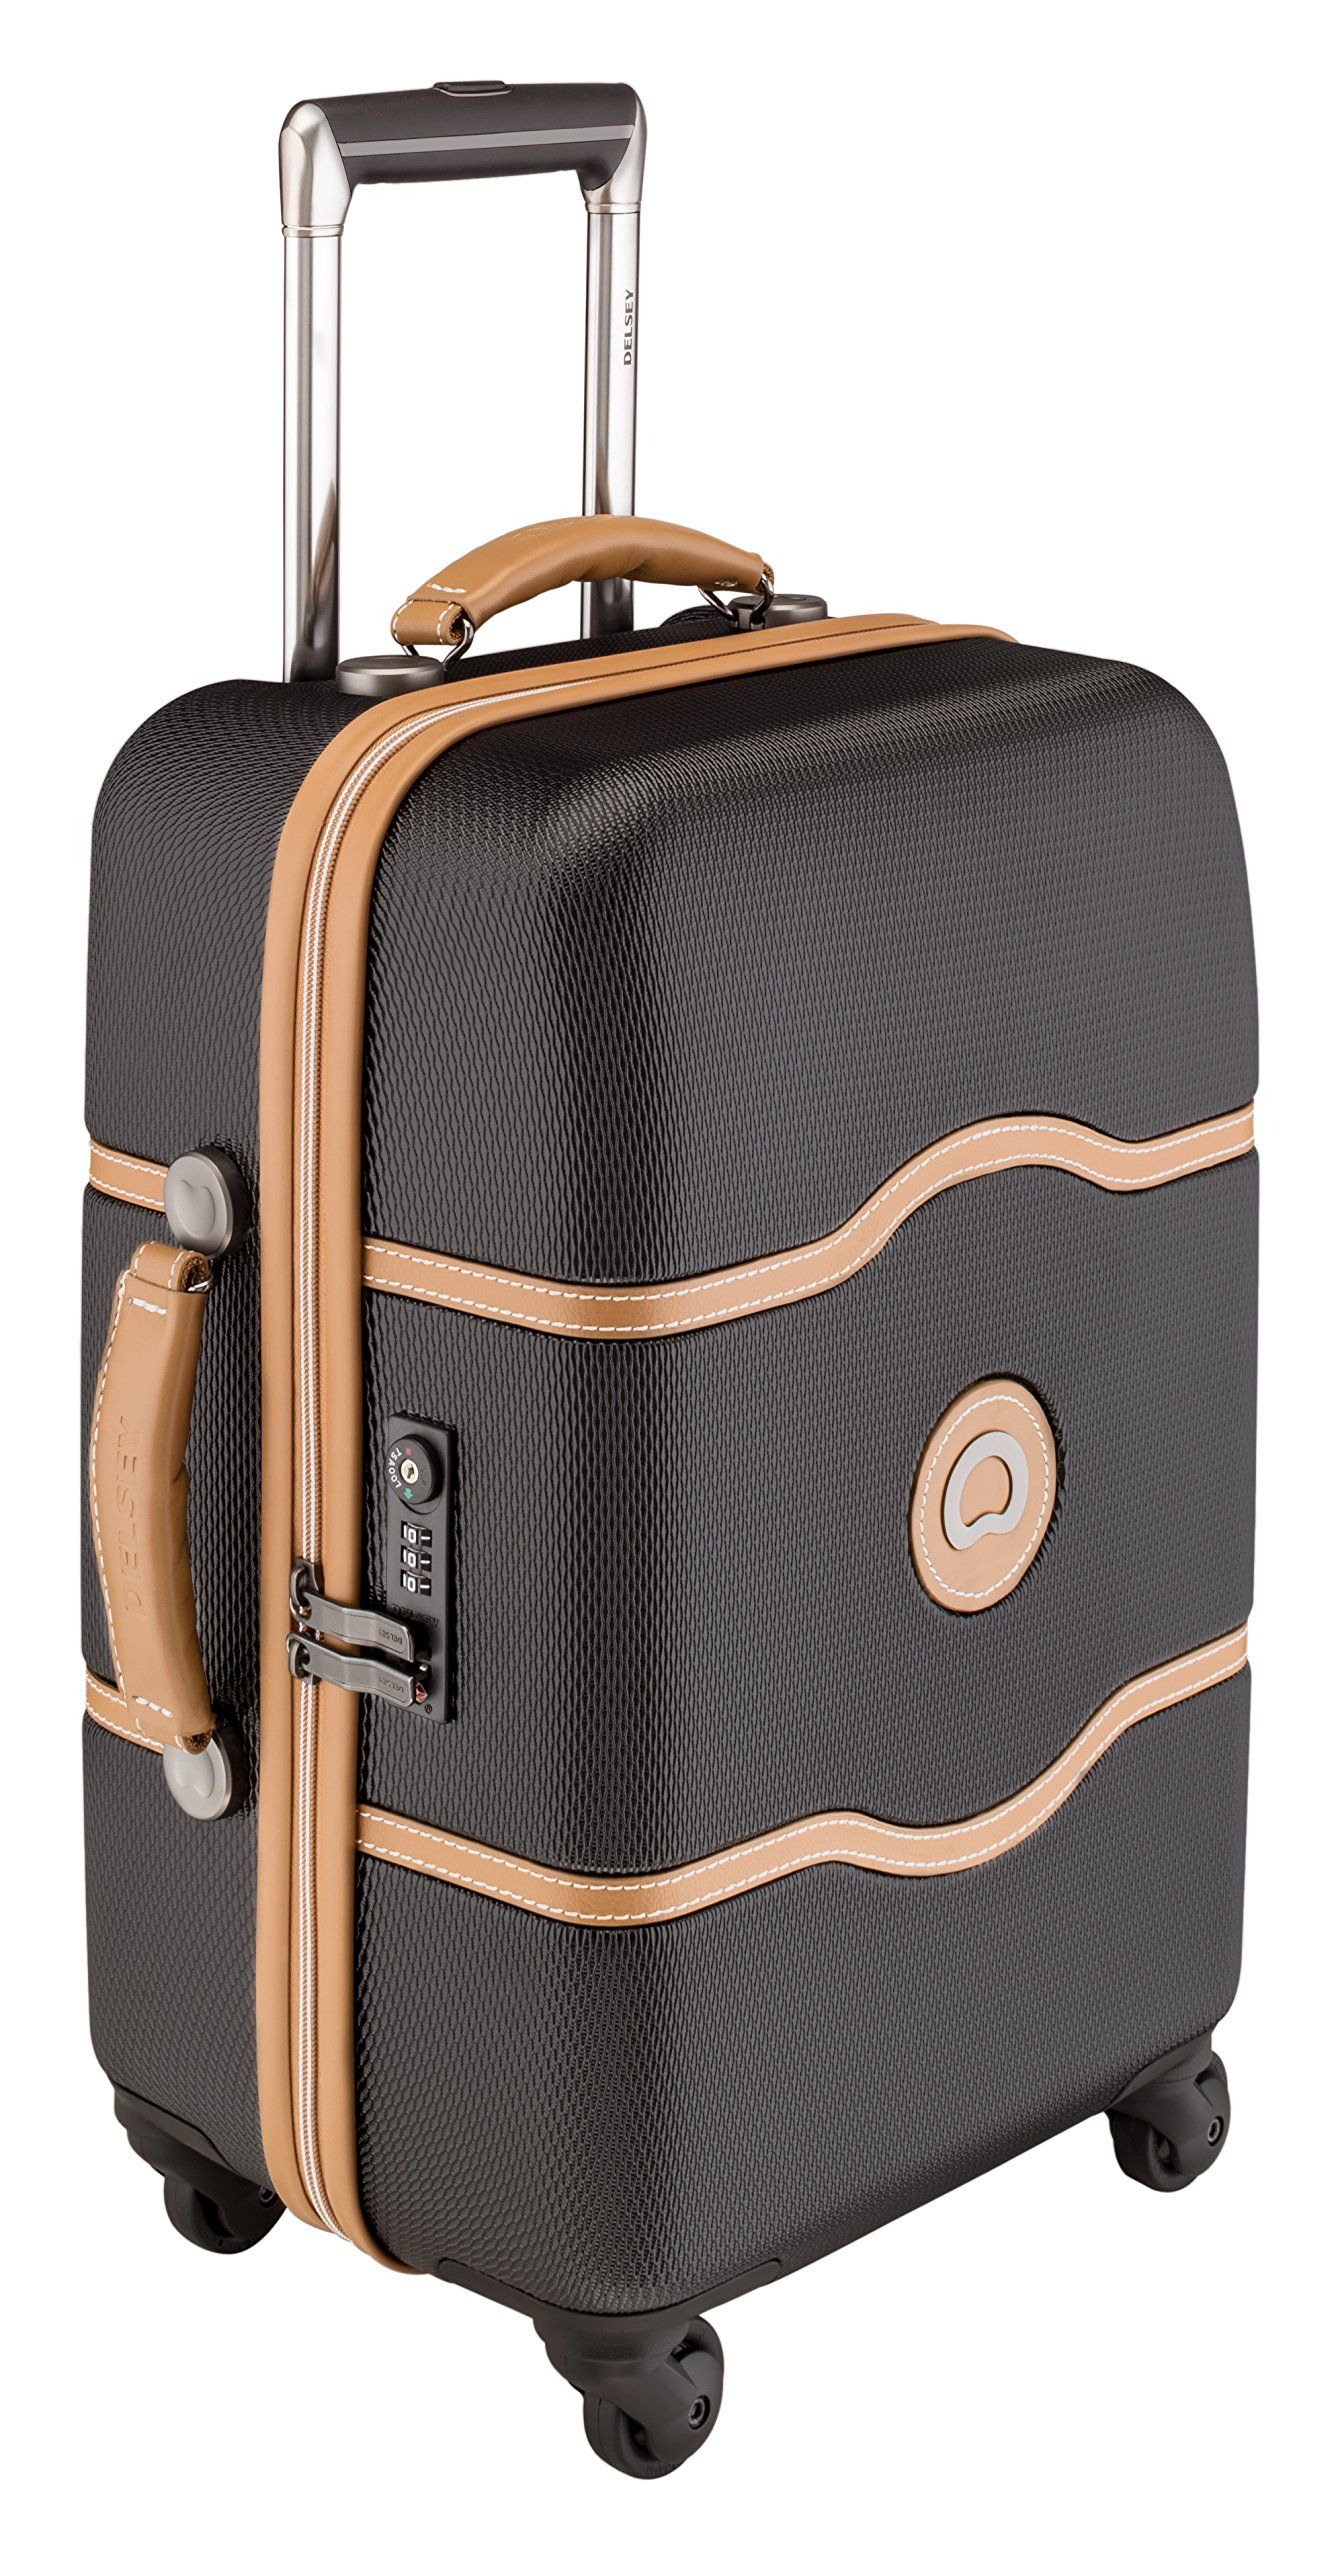 ee8272823540 Delsey Luggage Chatelet 21 Inch Carry-On Spinner